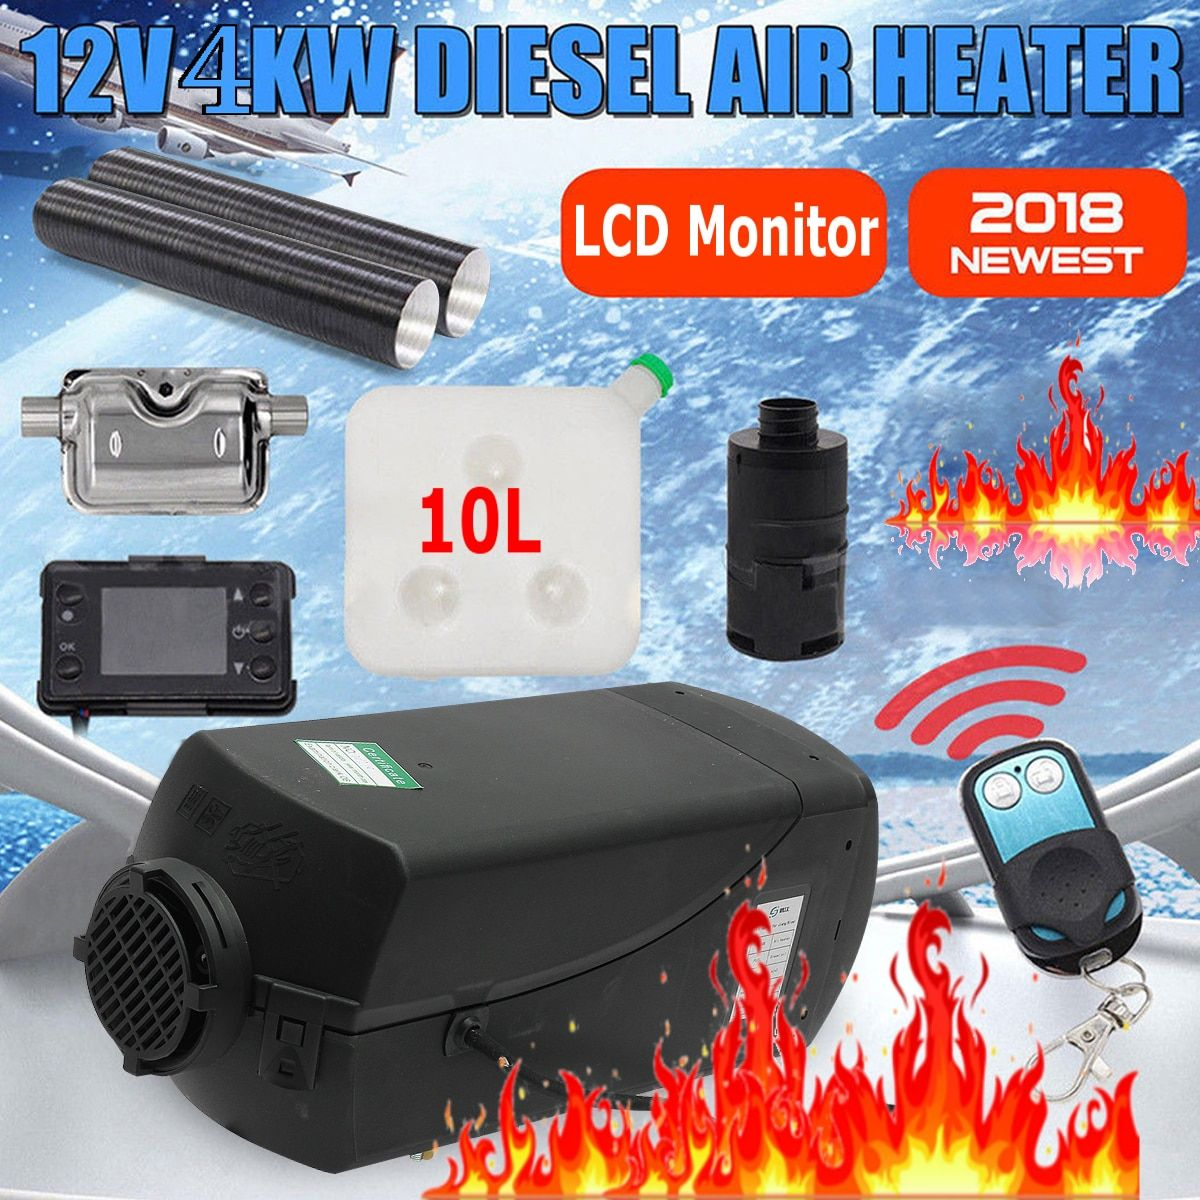 4KW 12V diesels air heater for Truck Boats caravan RV bus- To replace Eberspacher D4, Webastos parking heater +Remote + Silencer